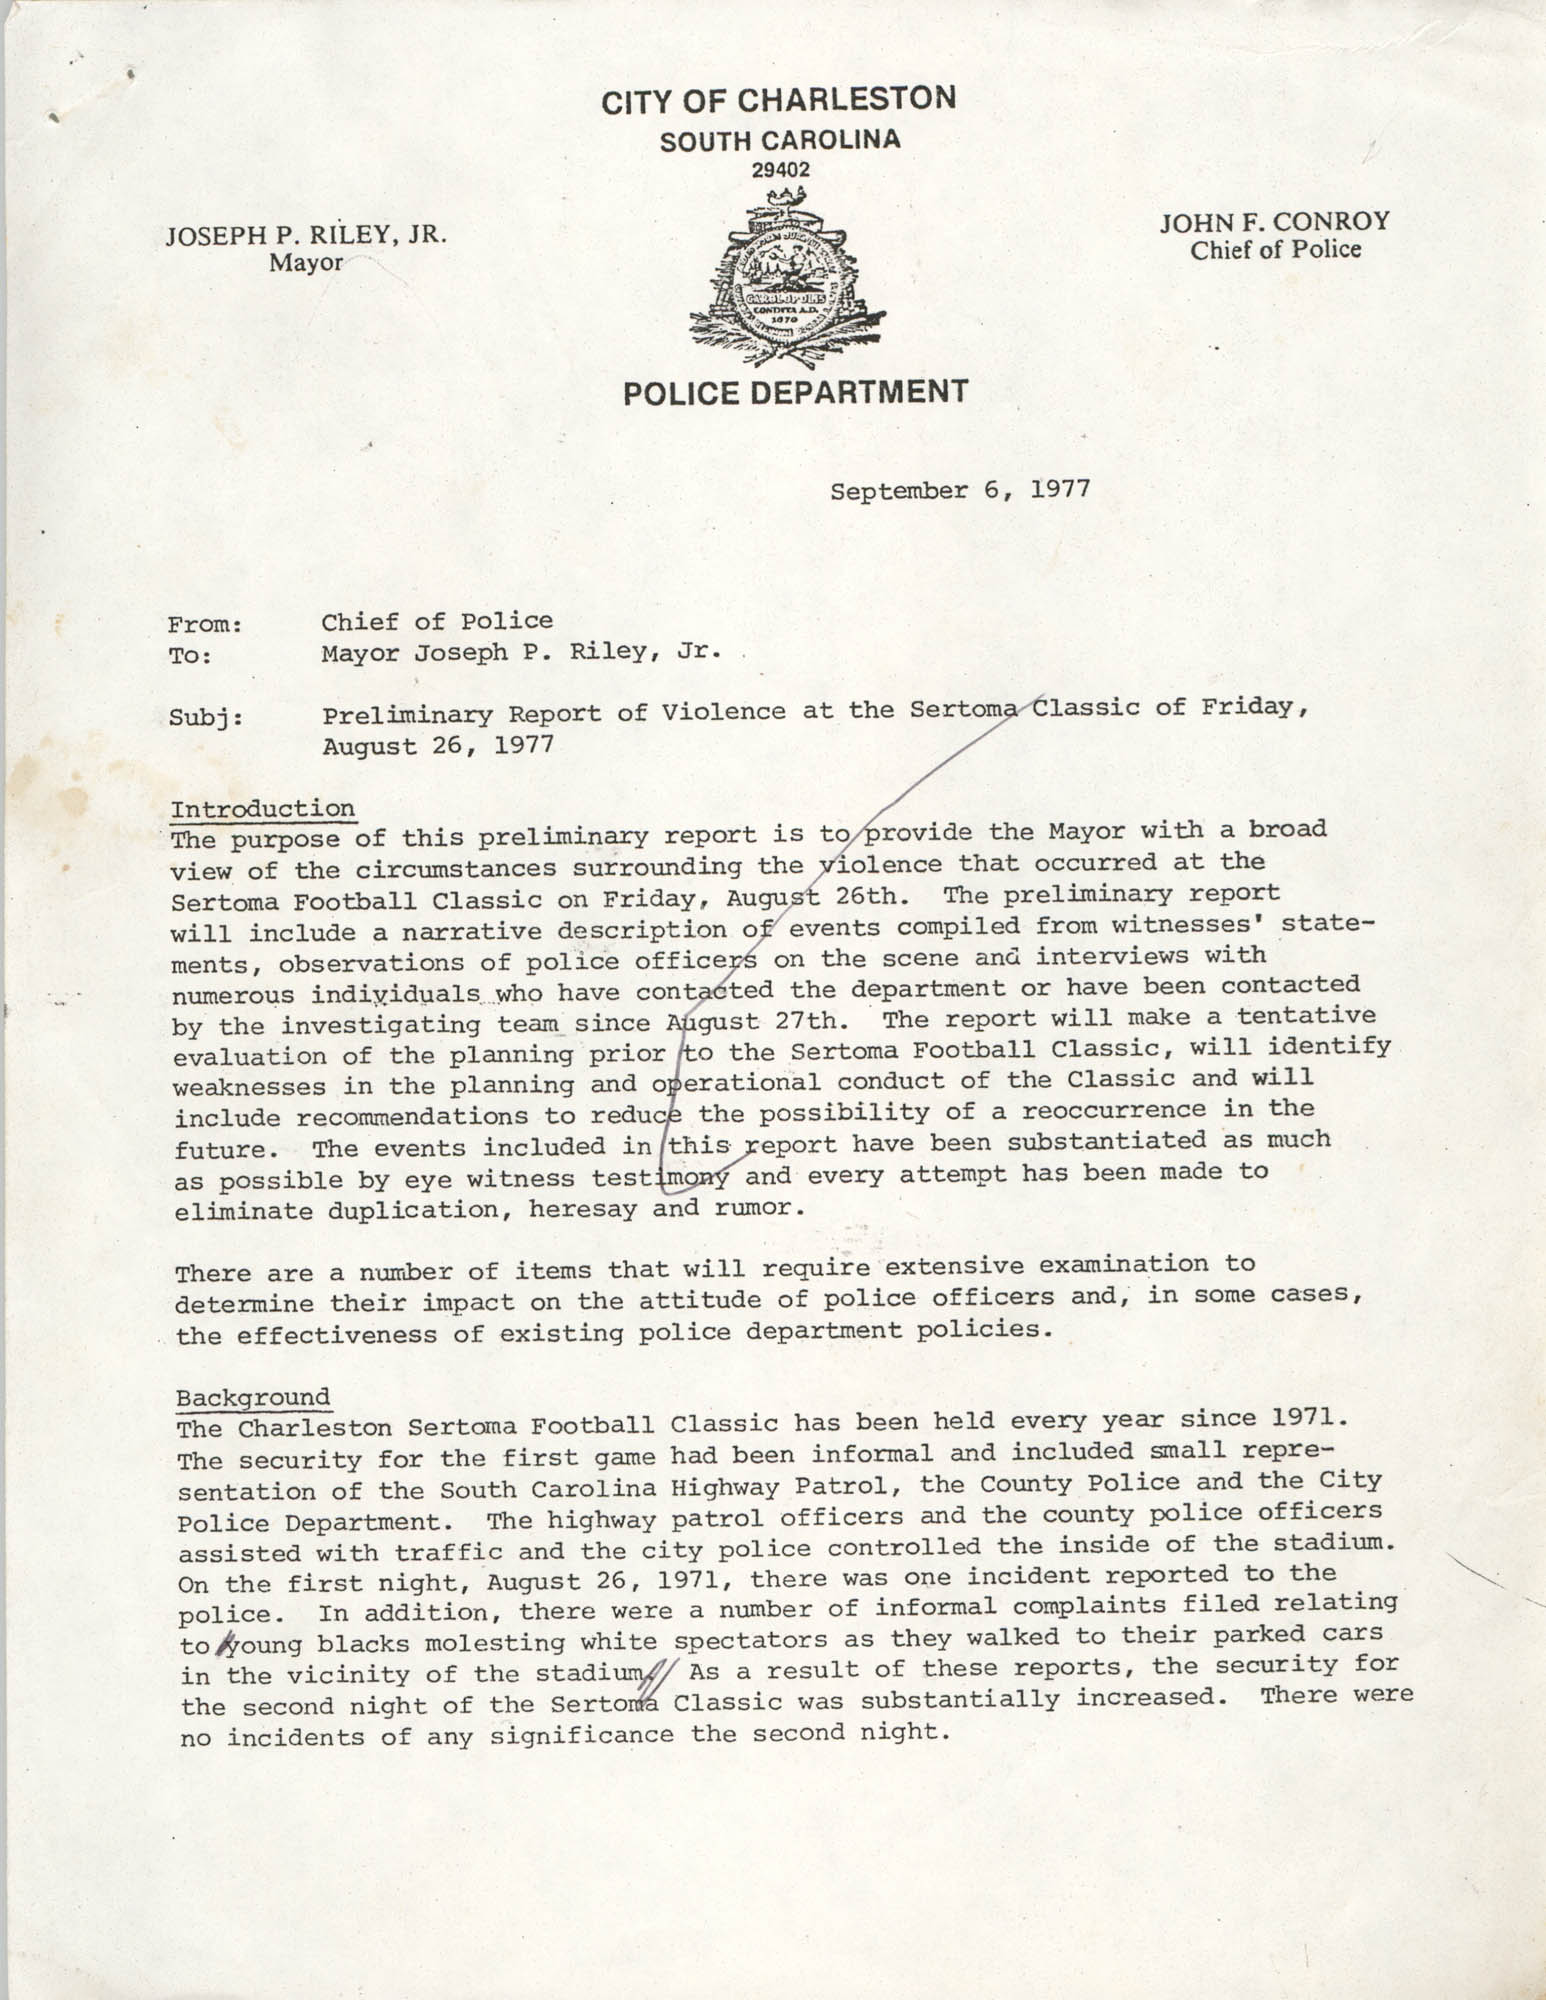 City of Charleston South Carolina Police Department Memorandum, September 6, 1977, Page 1